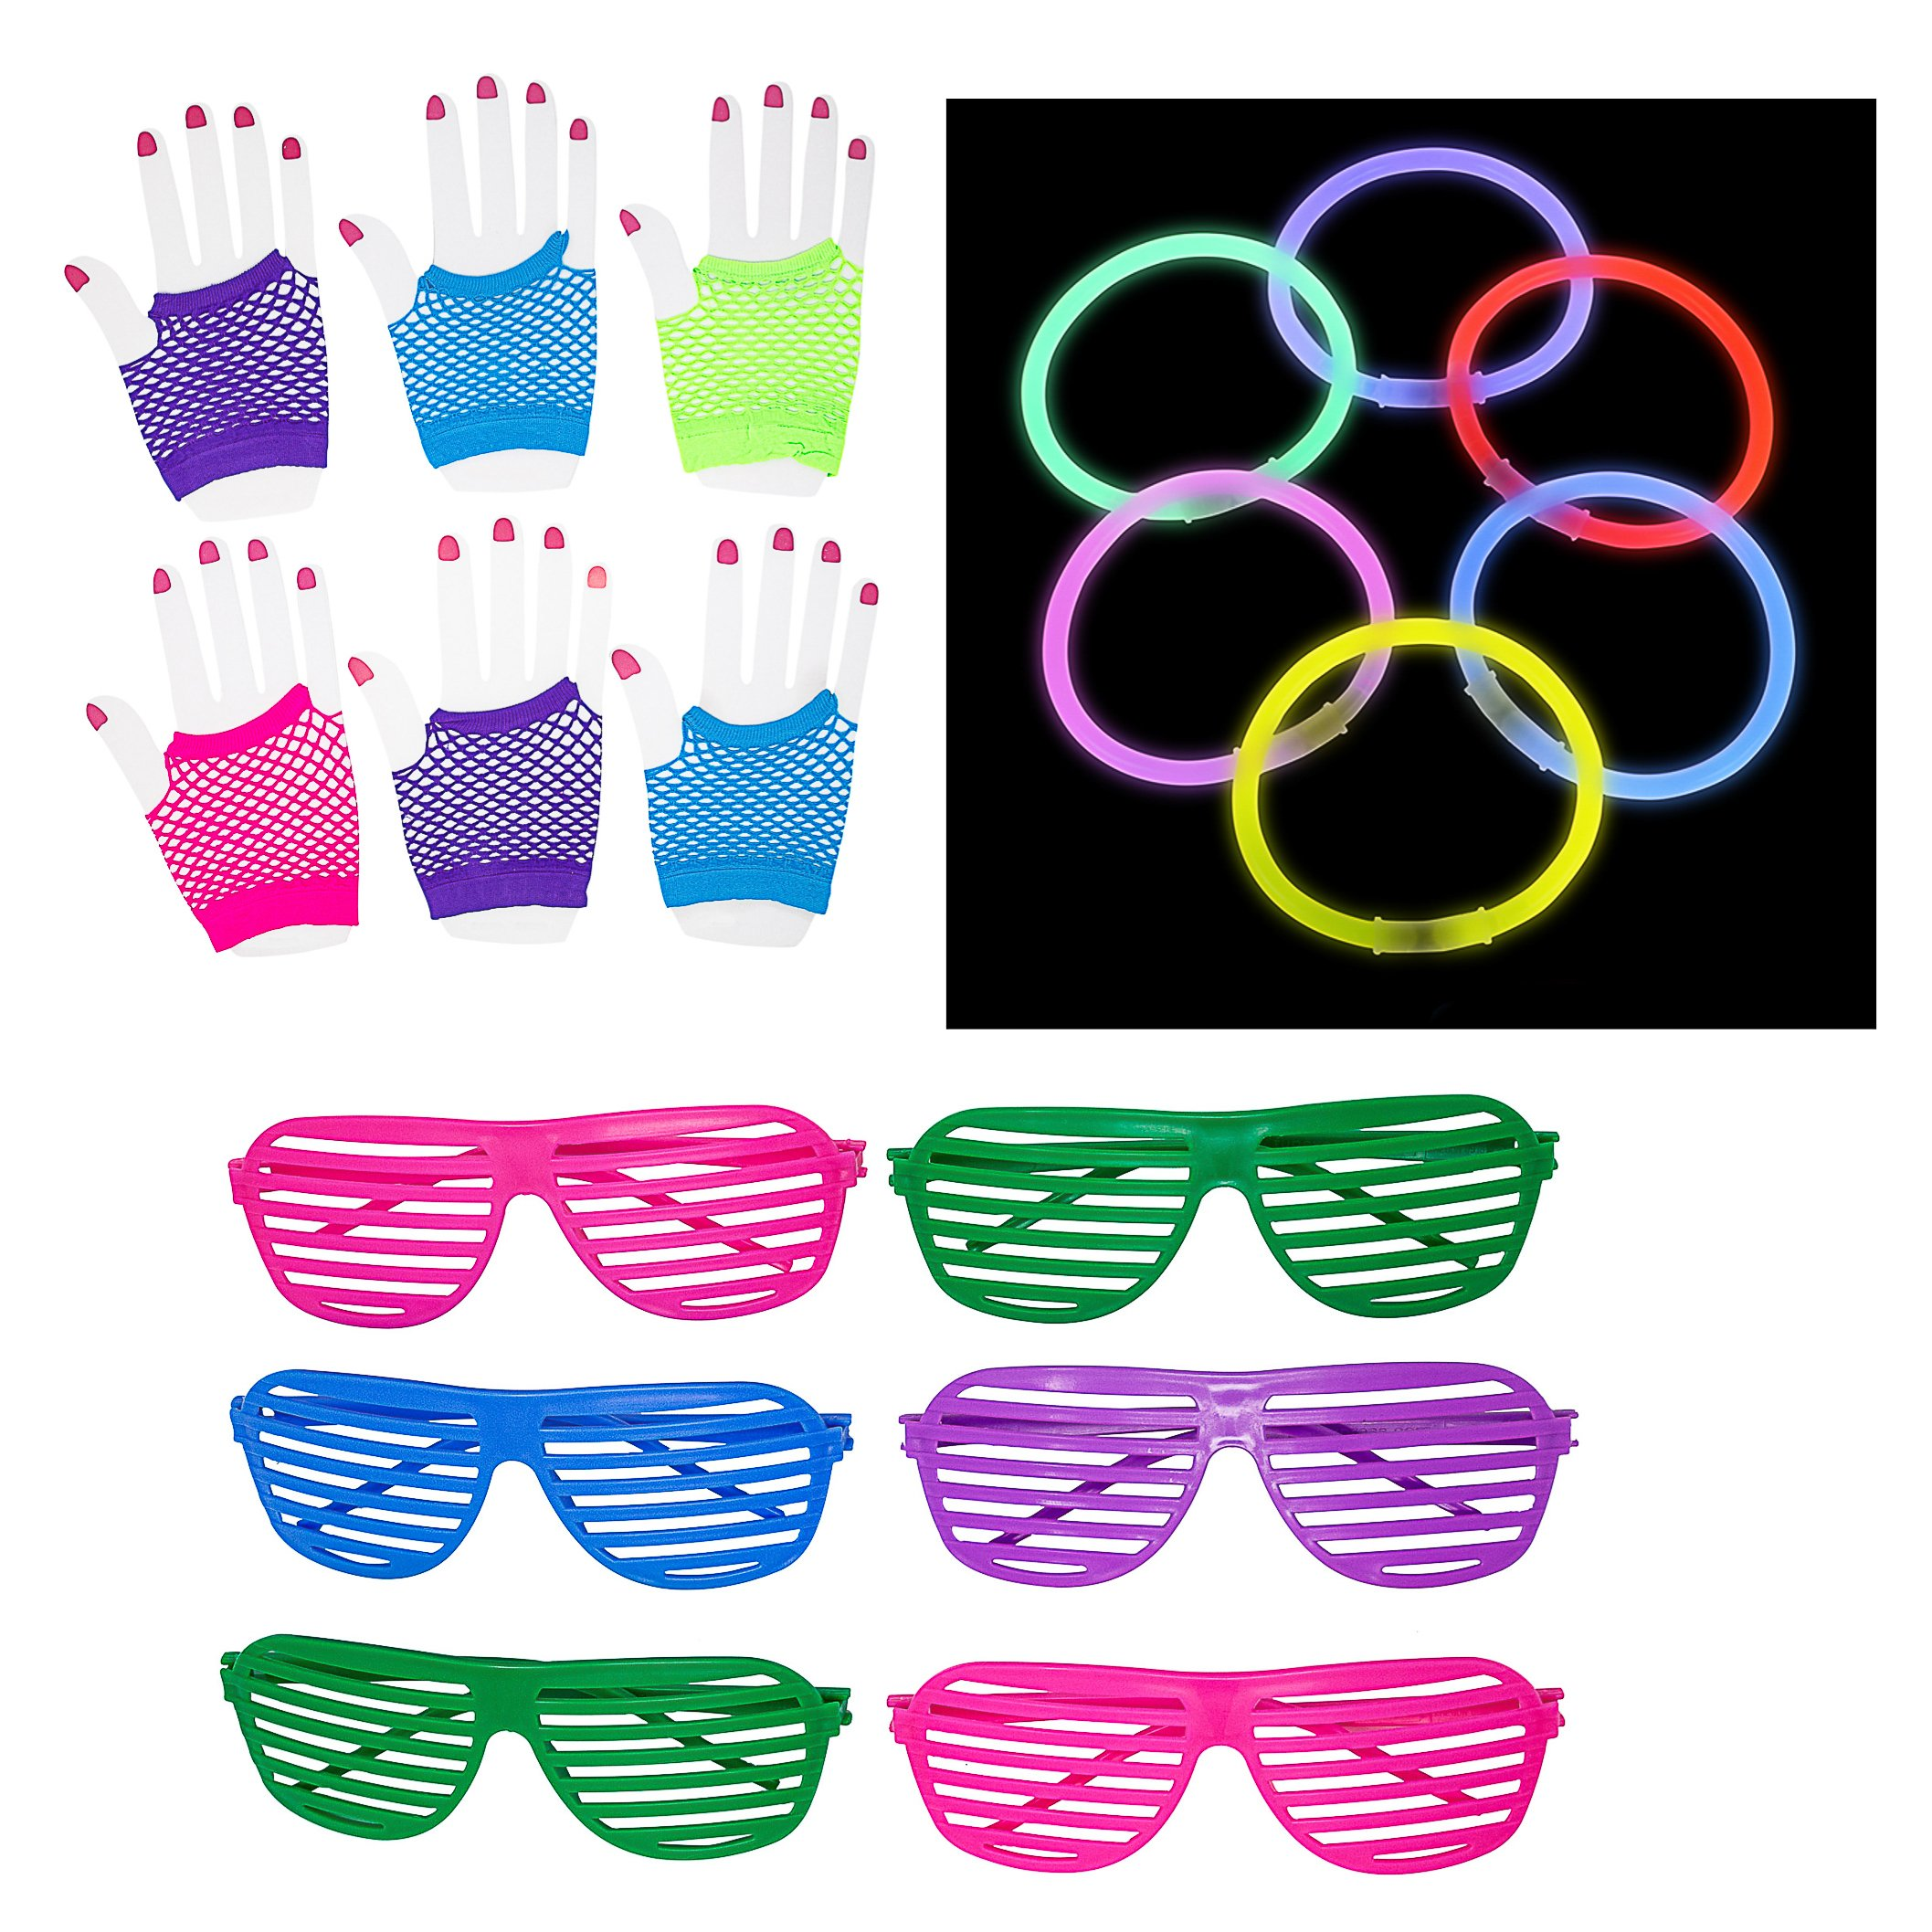 80s Party Supplies and Costume Accessories - 124 Piece Party Favor Pack Featuring (12) Neon Shutter Glasses, (12 Pairs) Fishnet Fingerless Gloves, (100) Neon Glow Bracelets